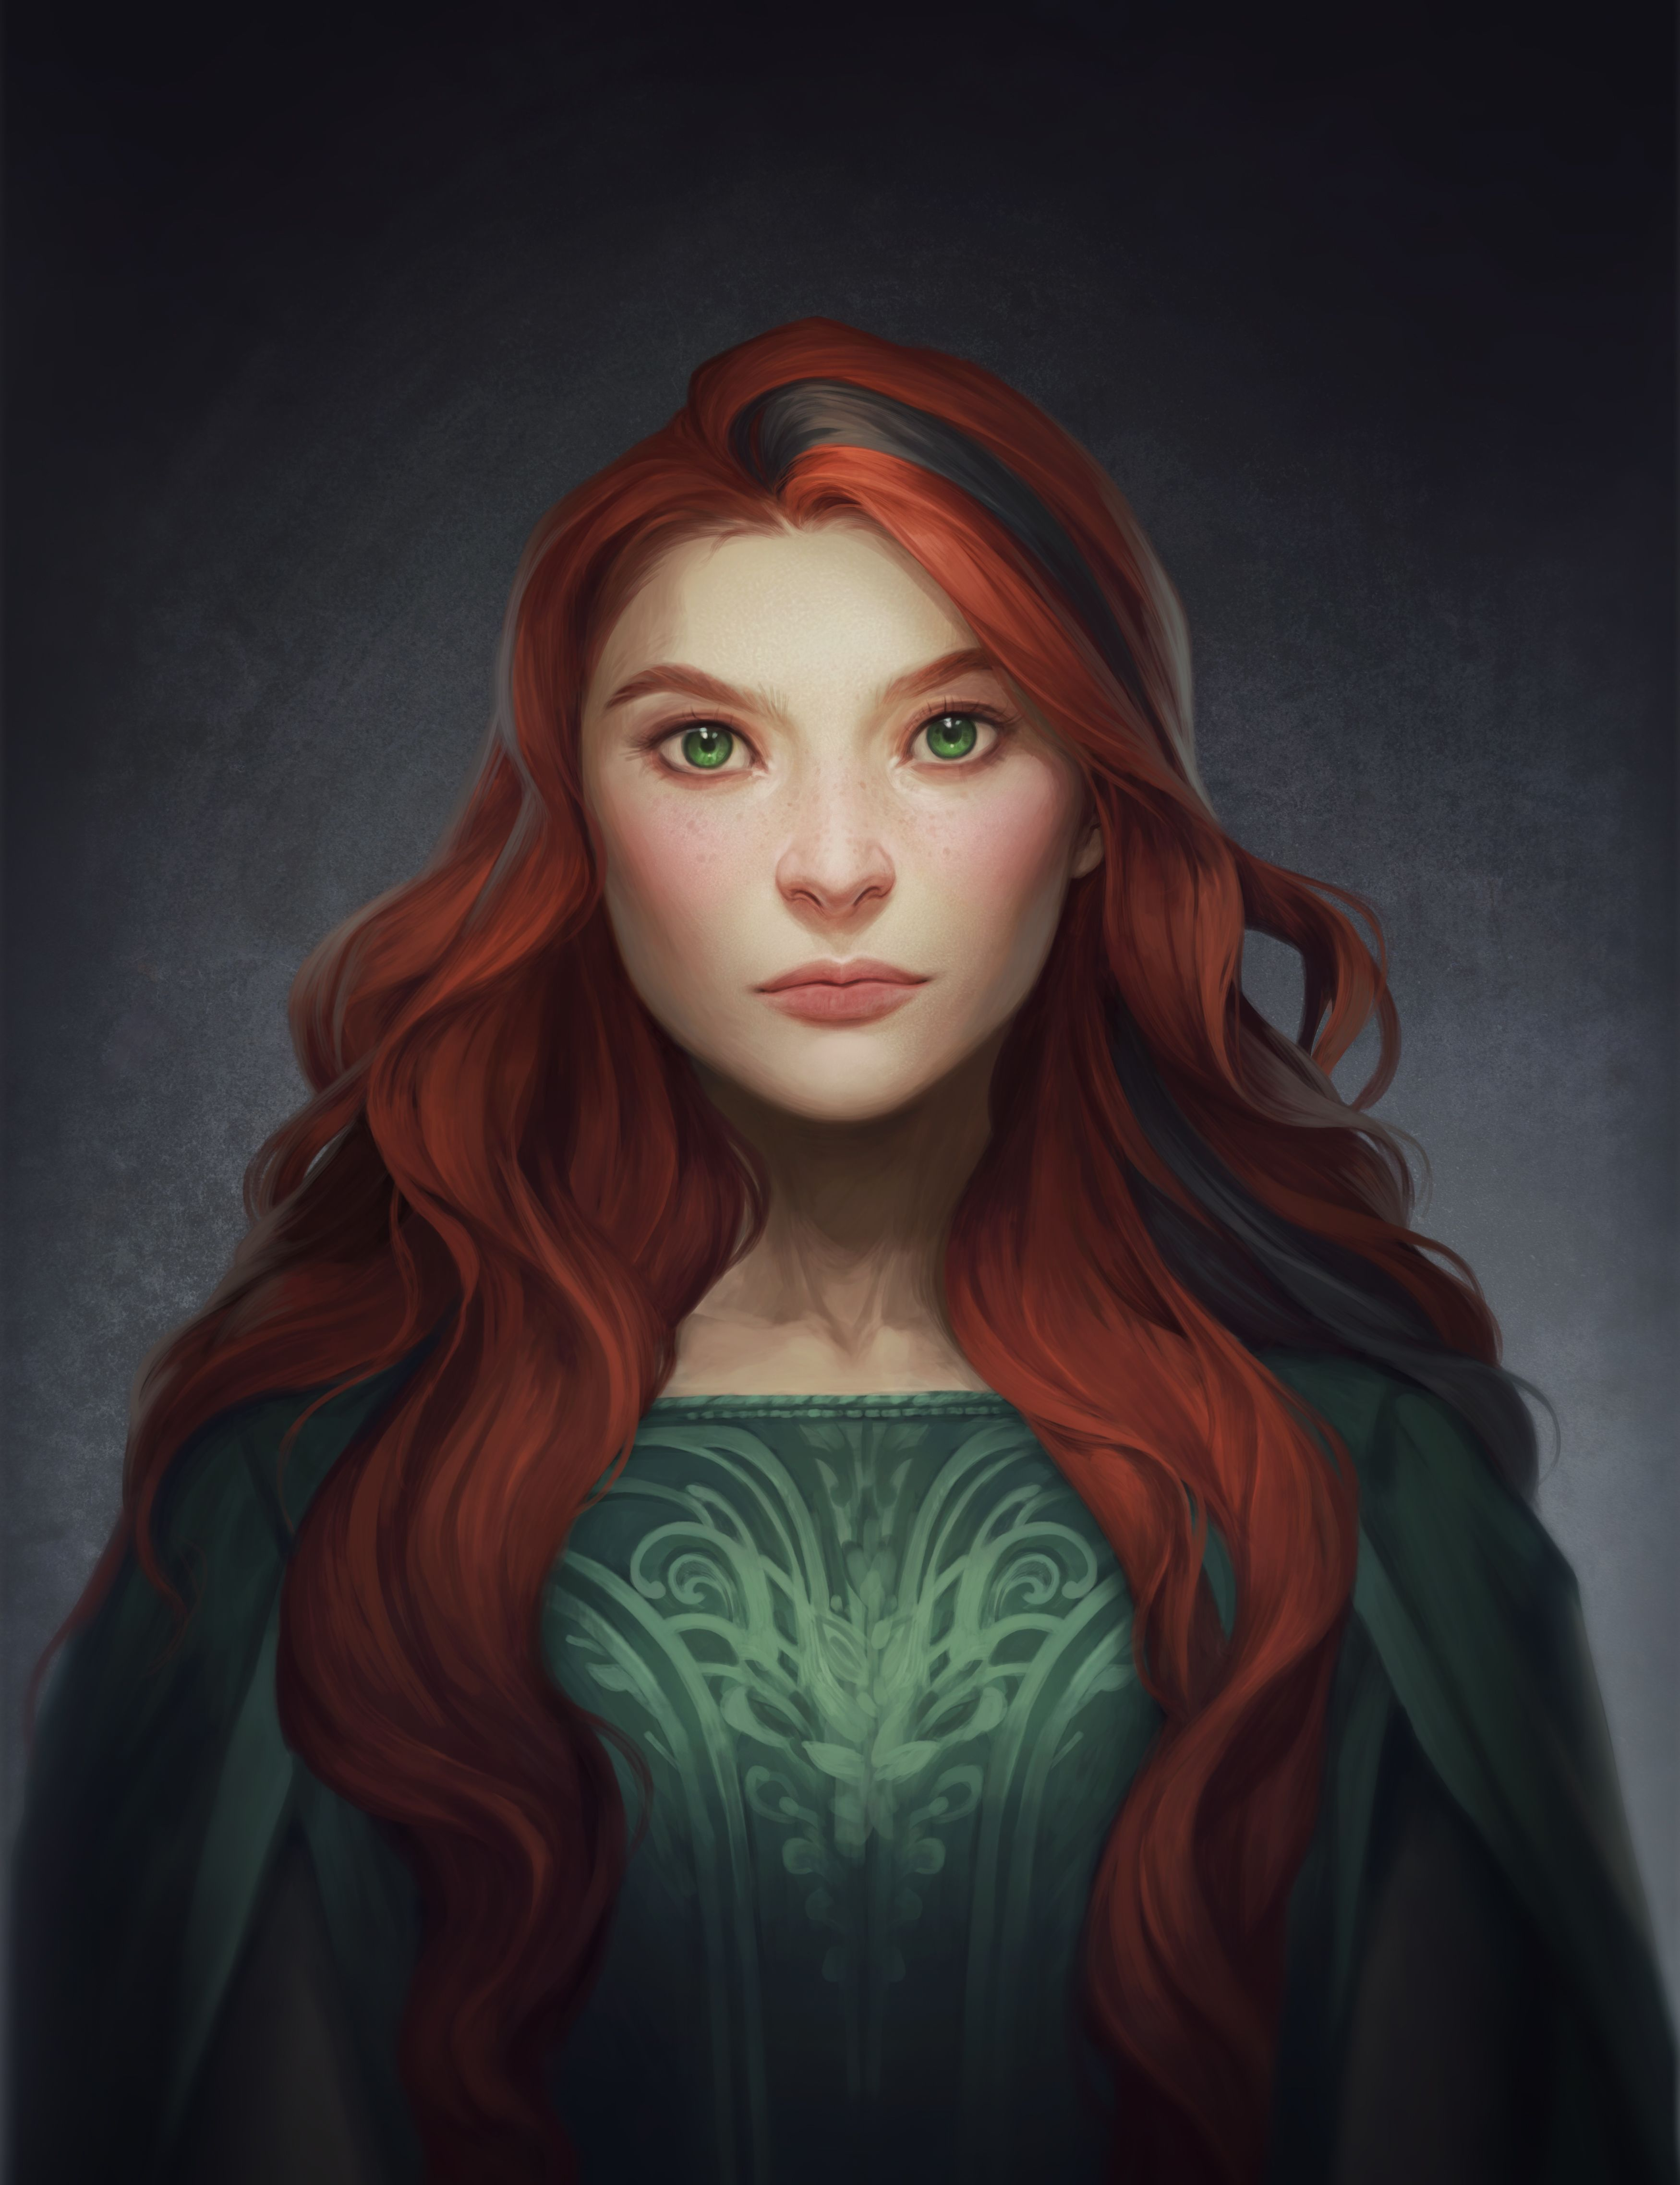 Vika Vika By Charlie Bowater The Crown 39s Game Fan Art